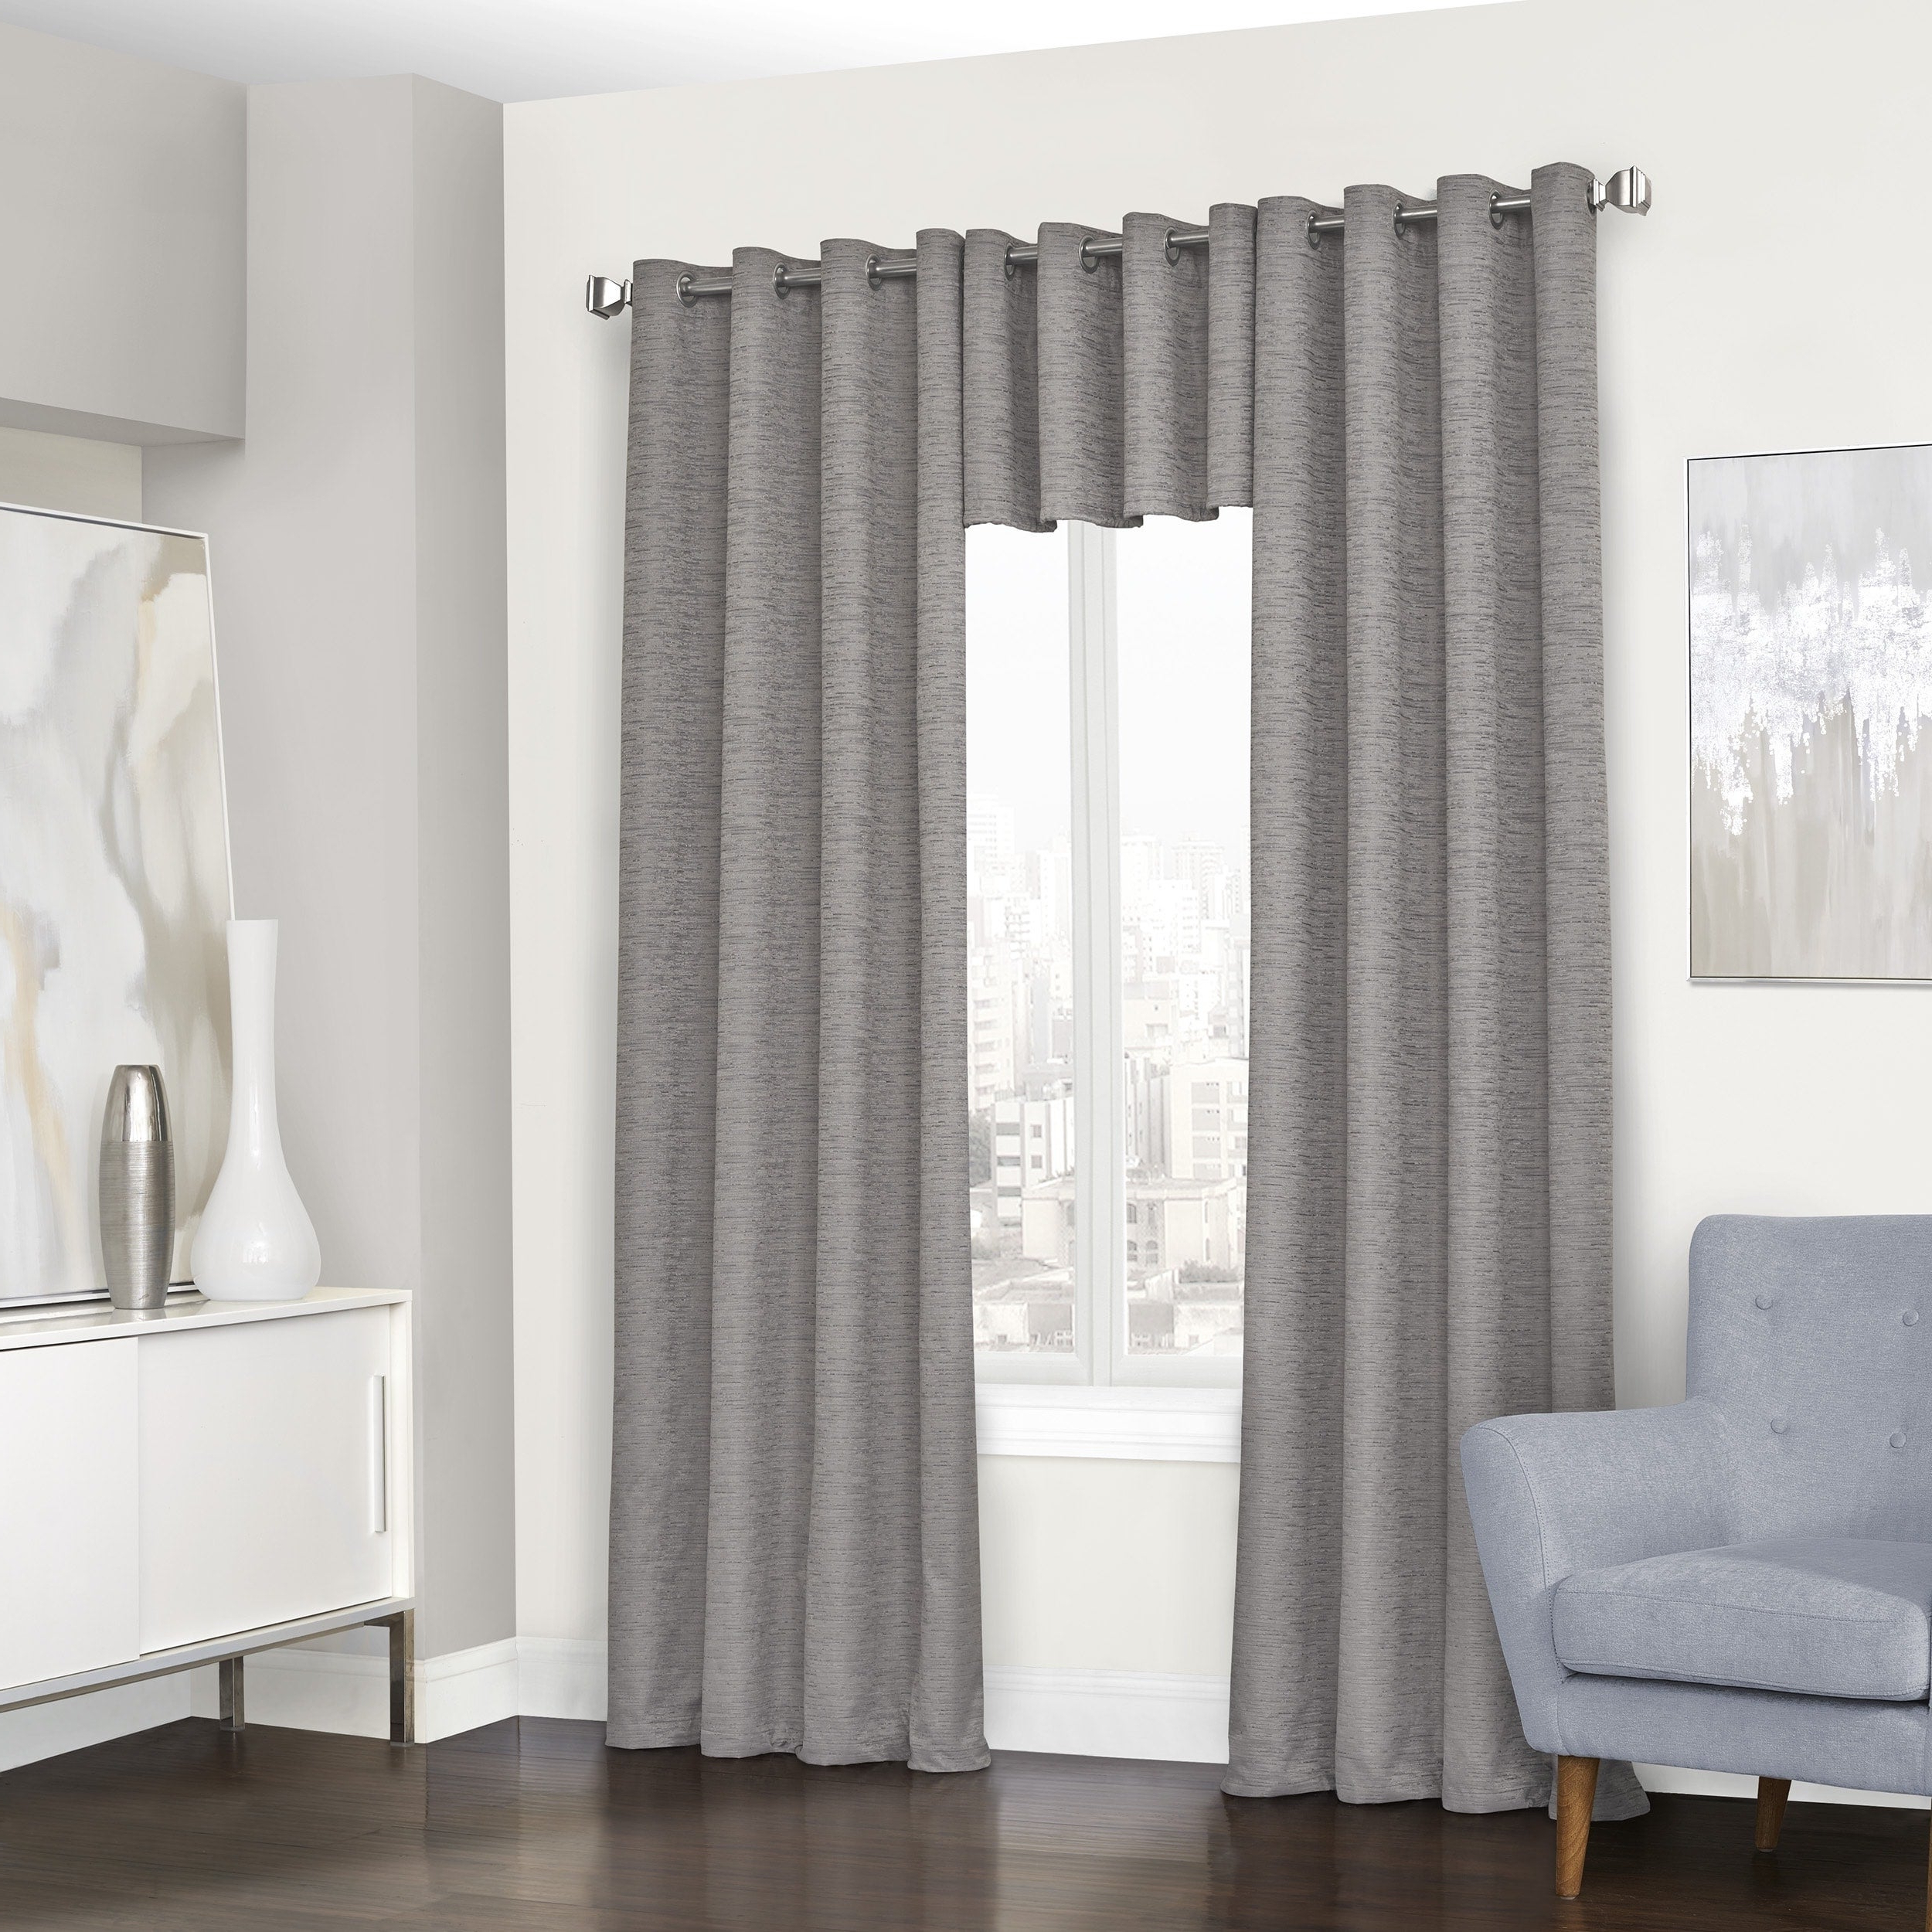 Eclipse Randall Blackout Grommet Window Curtain Panel – N/a For Current Eclipse Trevi Blackout Grommet Window Curtain Panels (View 10 of 20)